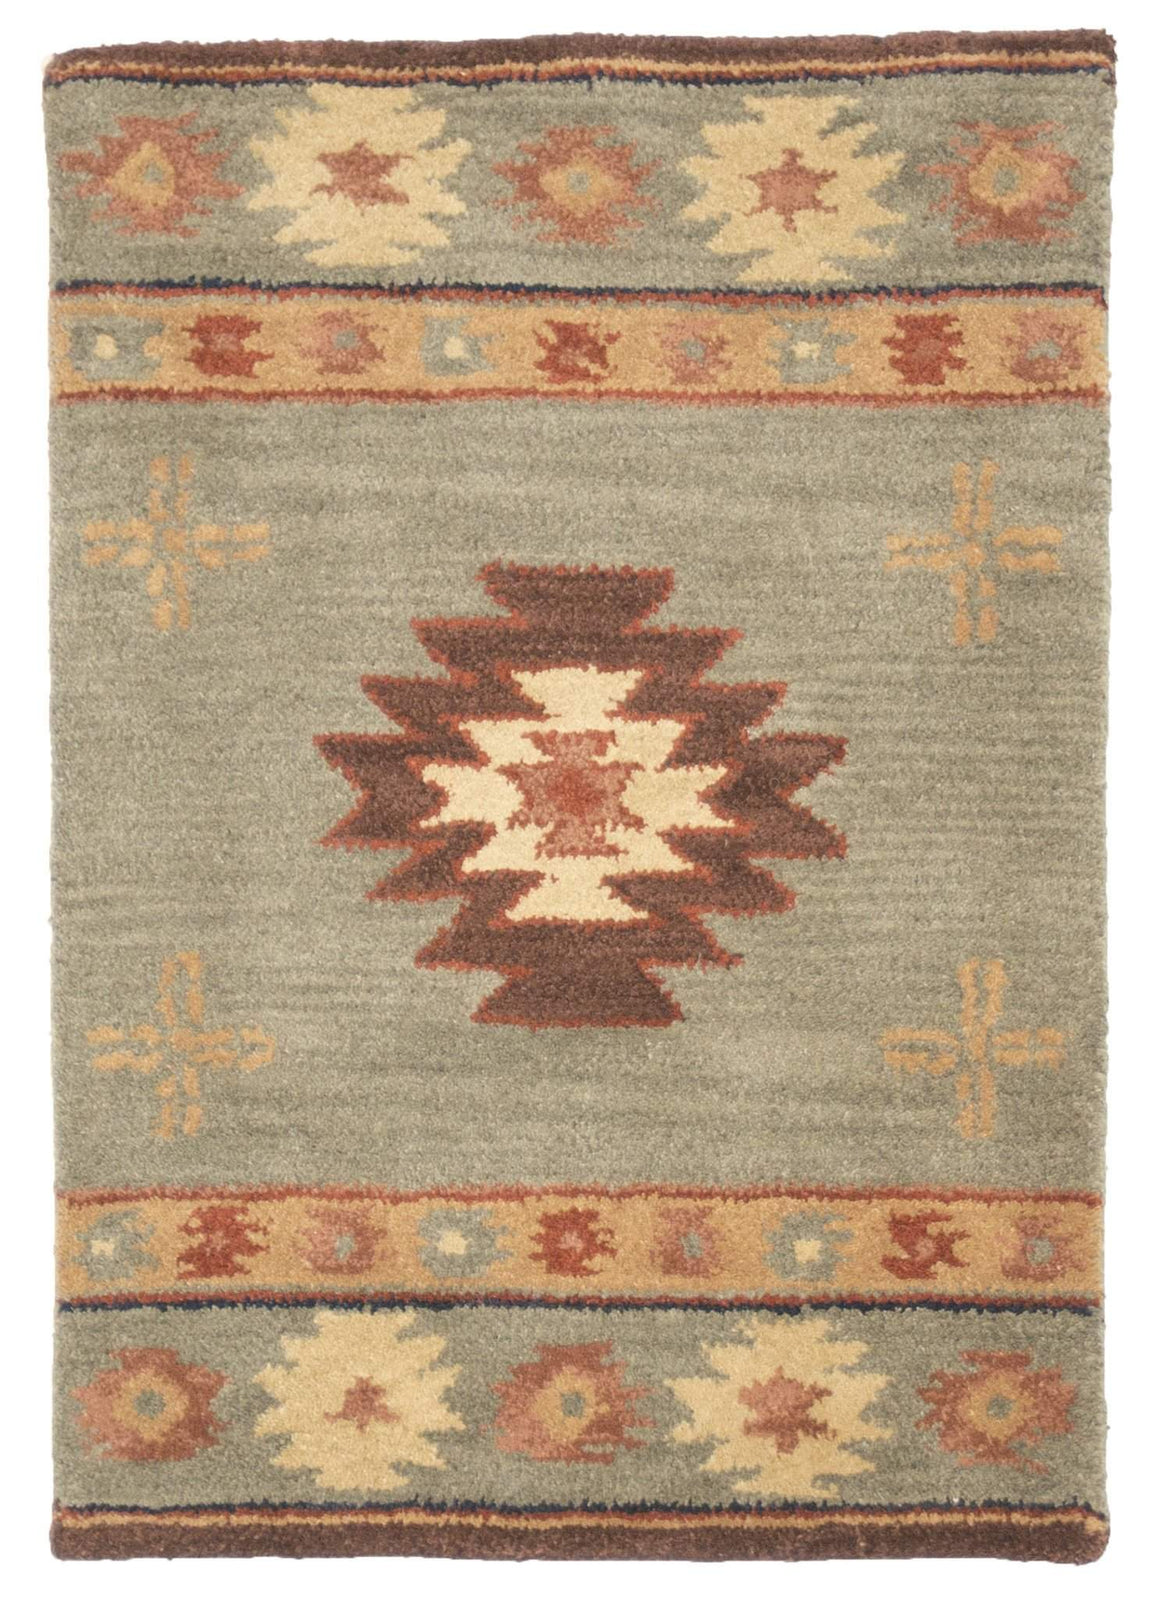 2' x 3' Southwest Design Wool Small Rug by Rug Shop and More Area Rugs - Rug Shop and More